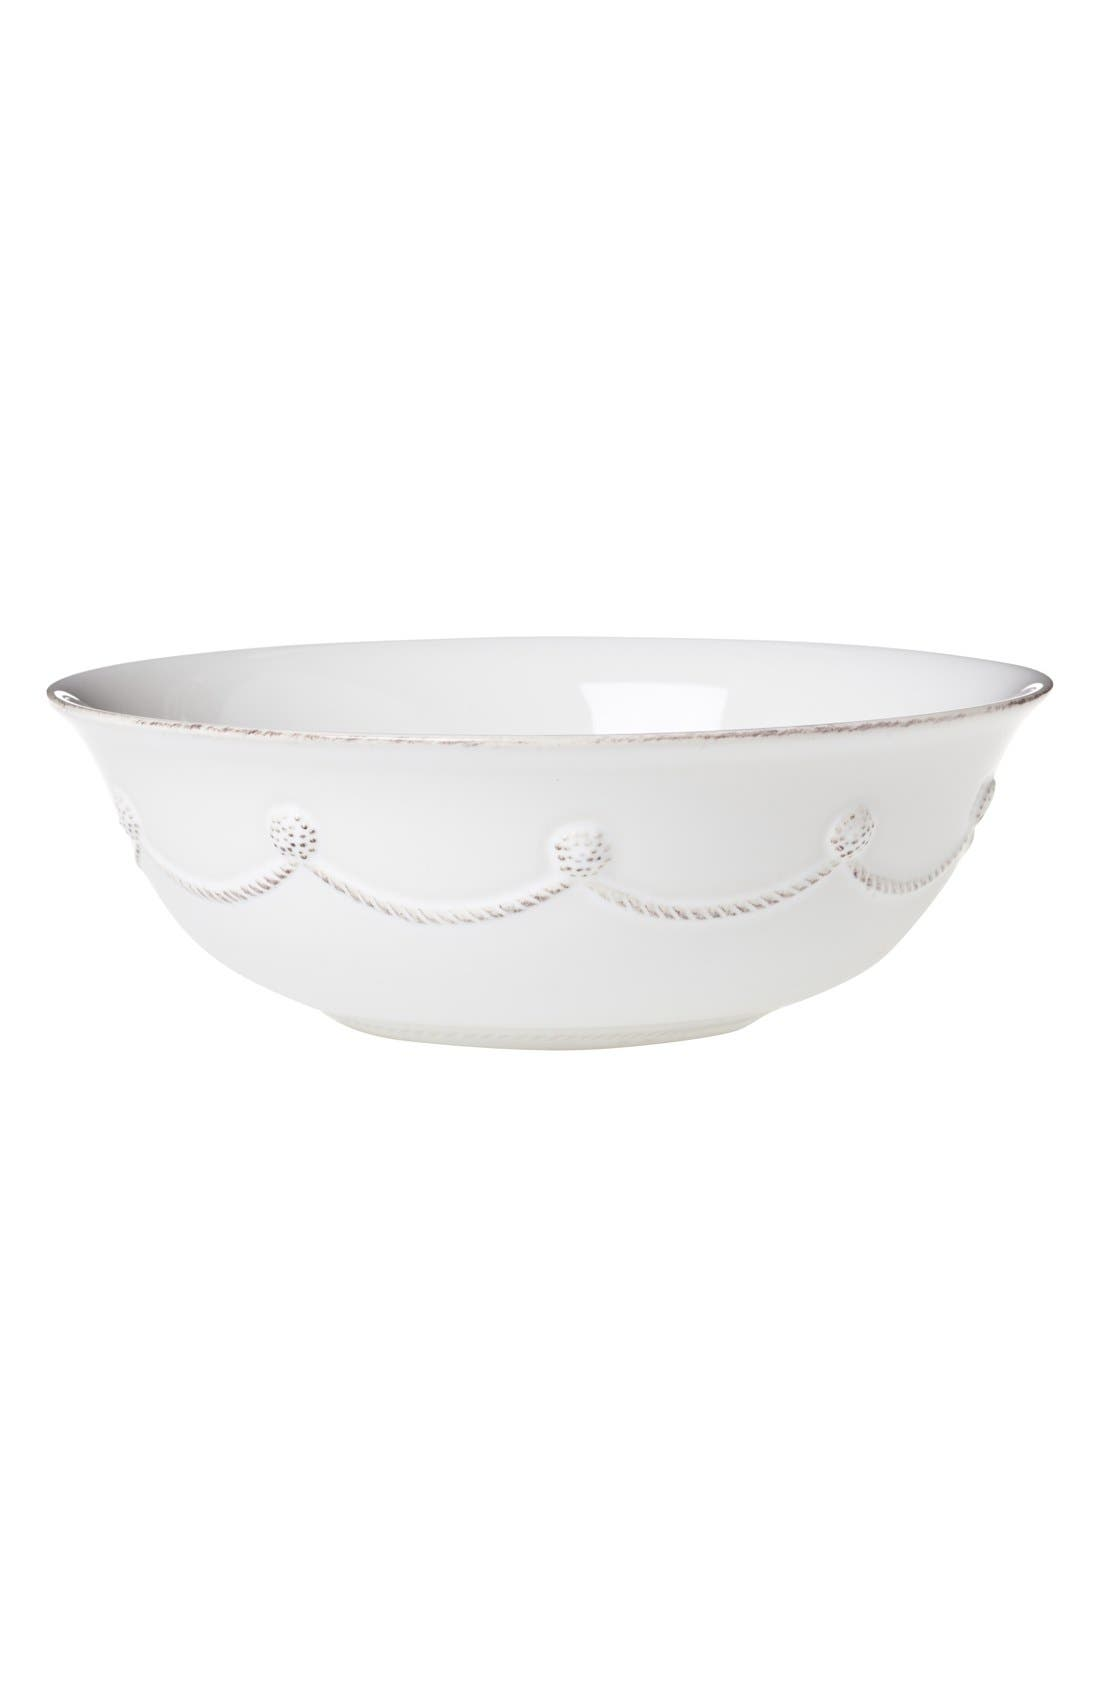 JULISKA 'Berry and Thread' Ceramic Serving Bowl